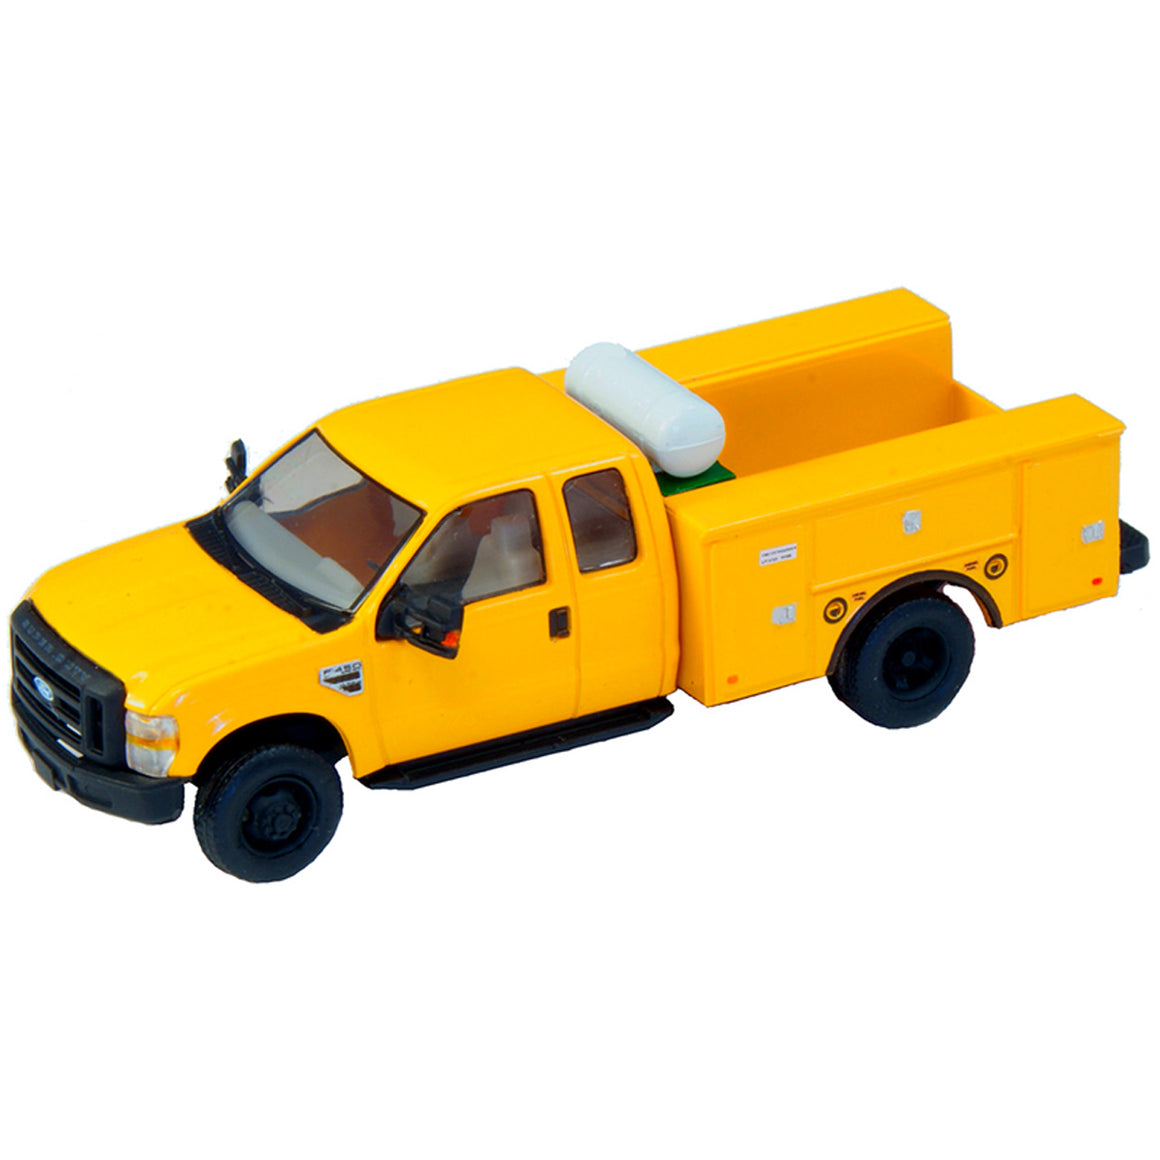 HO Scale: Lighted Ford F-450 Super Cab Fleet Service Truck - Yellow